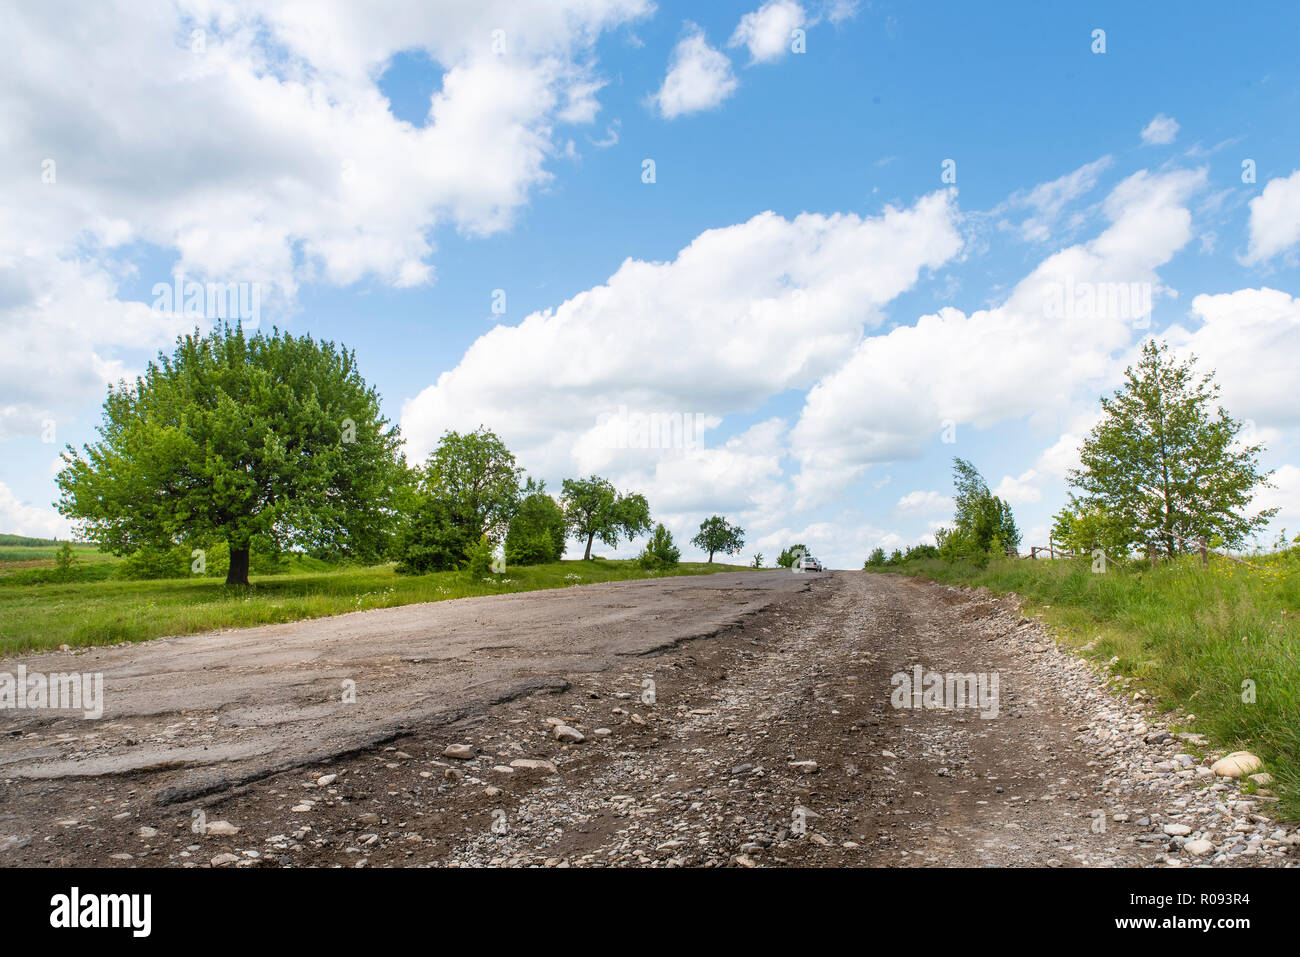 Completely destroyed road, difficult traffic area, threat of damage to vehicle. Countryside Stock Photo